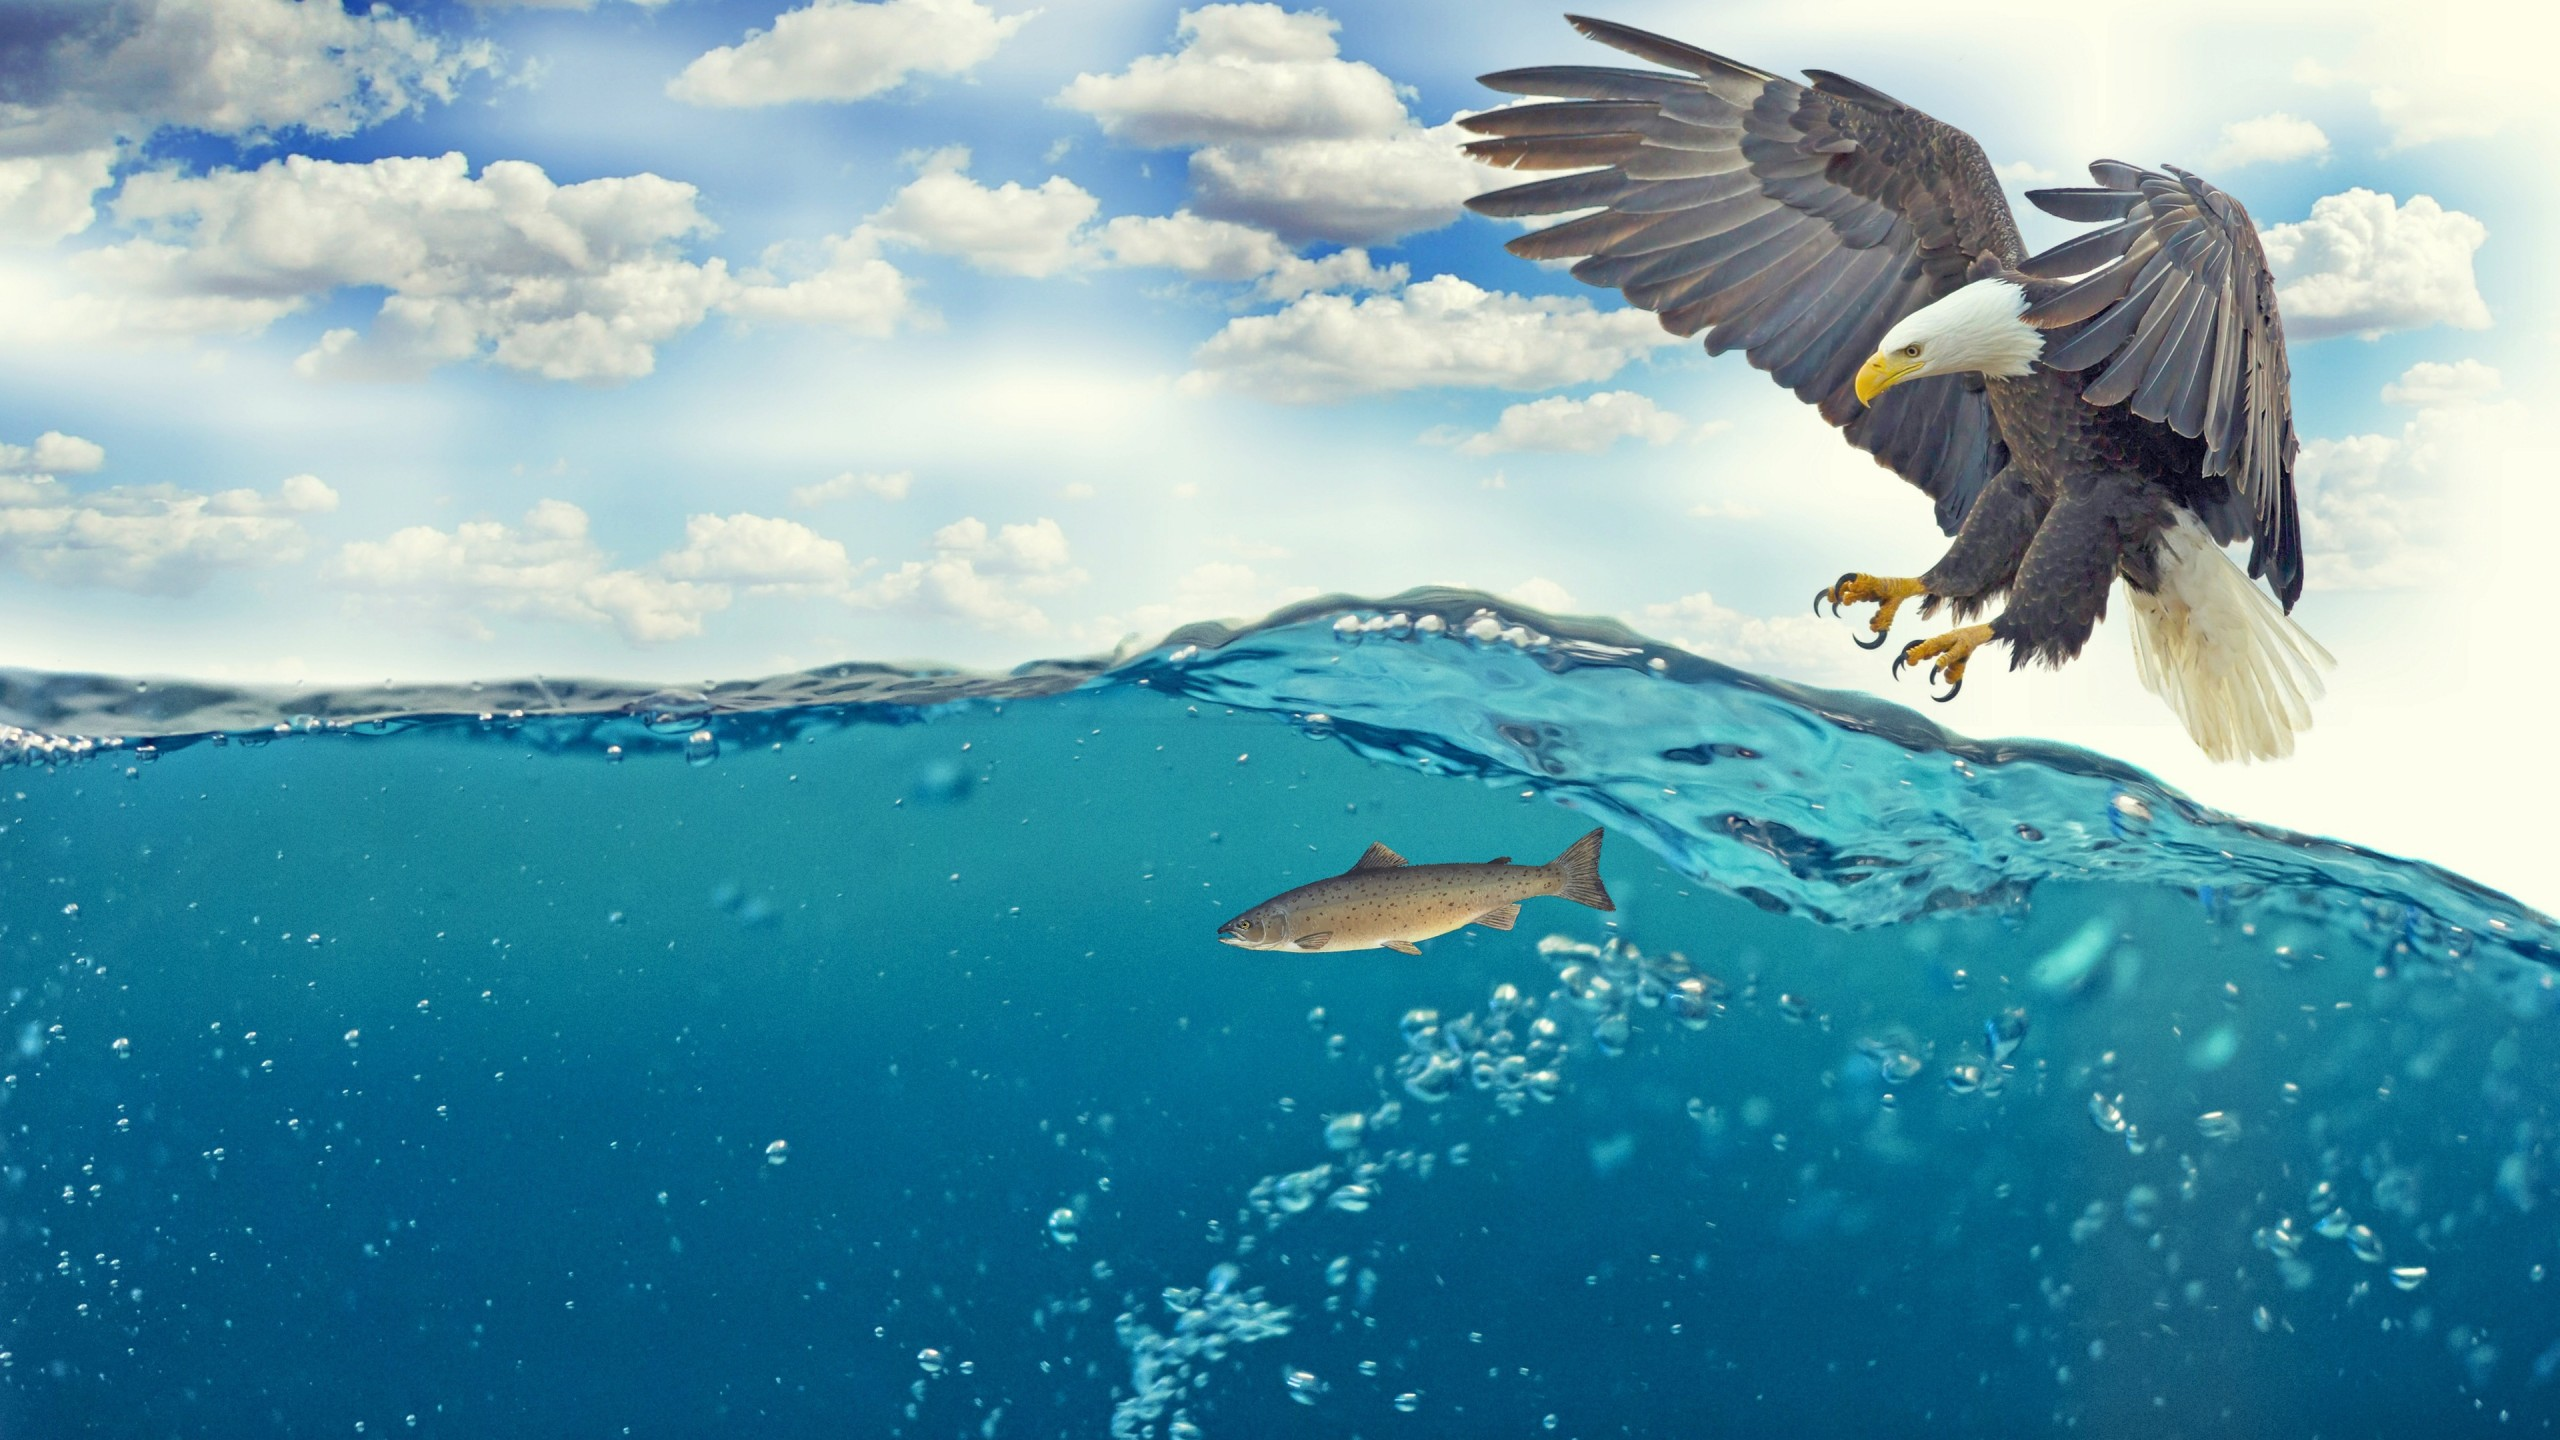 Eagle Fish Underwater 4K Wallpapers HD Wallpapers ID